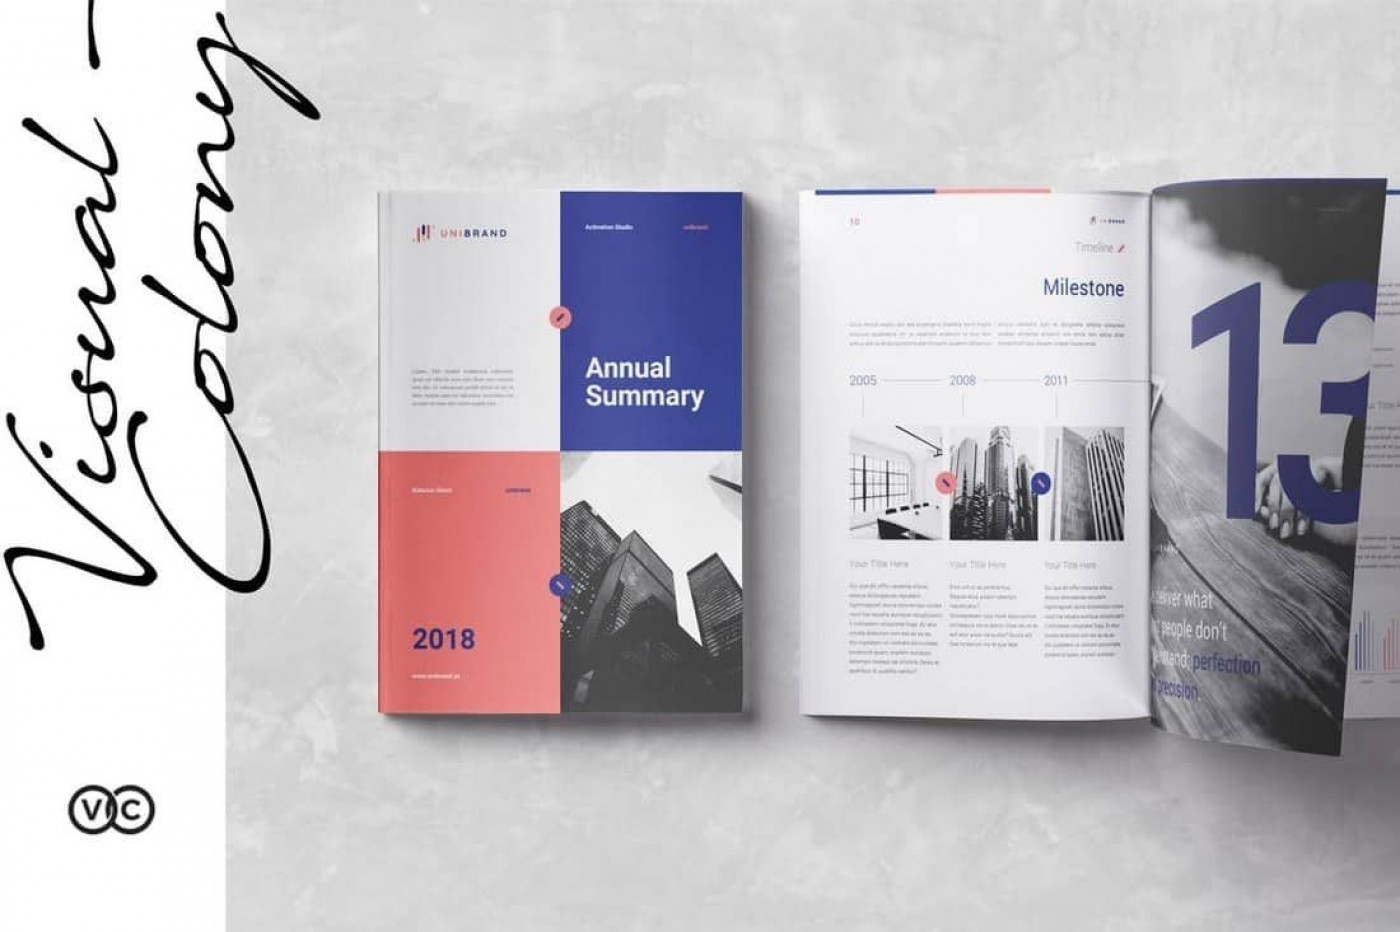 008 Fascinating Free Annual Report Template Indesign Image  Adobe Non Profit1400